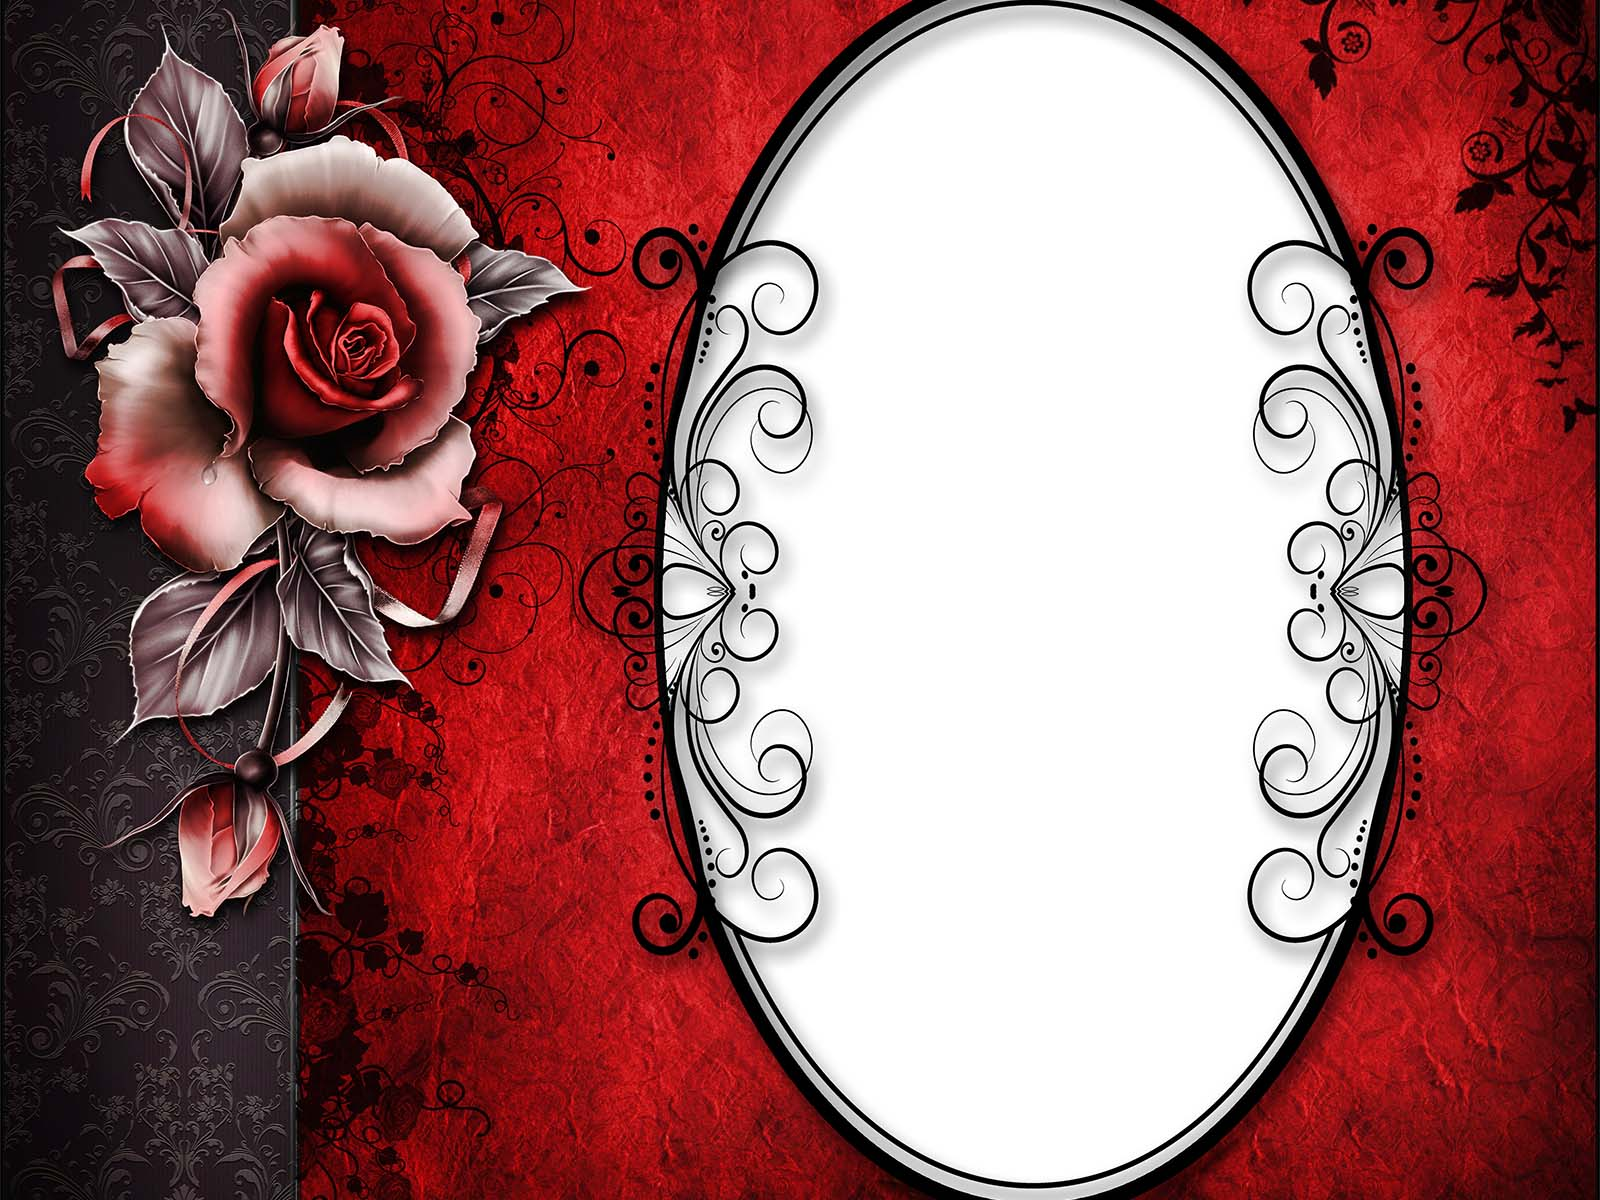 Rose frame backgrounds